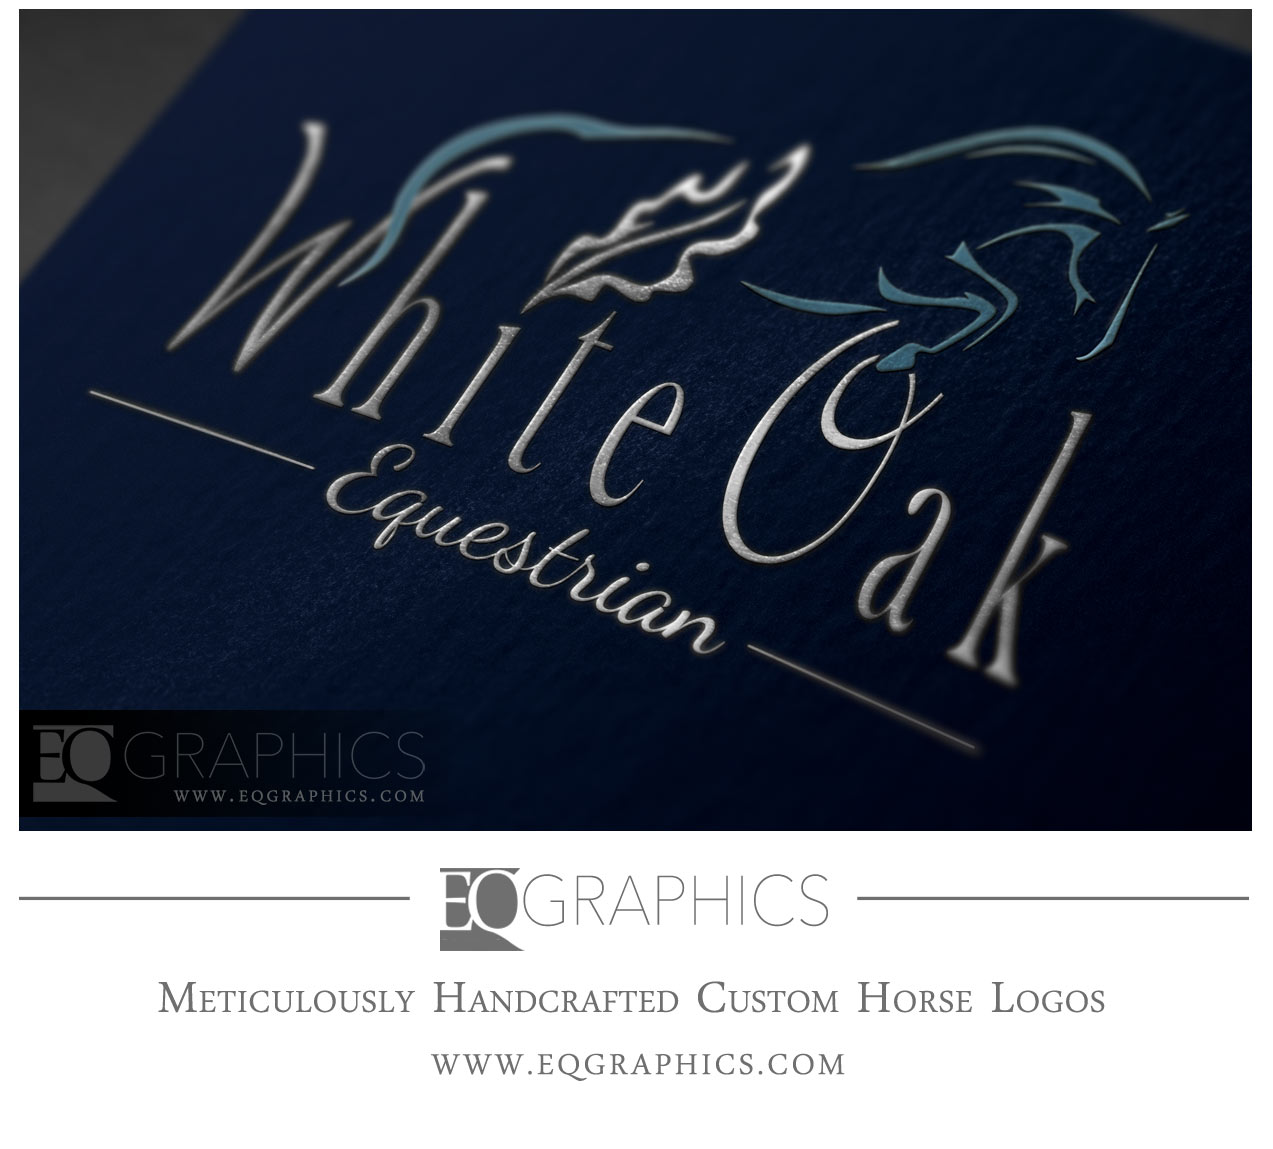 White Oak Equestrian Jumping Horse Hunter Jumper Logo by Equine Designer EQ Graphics